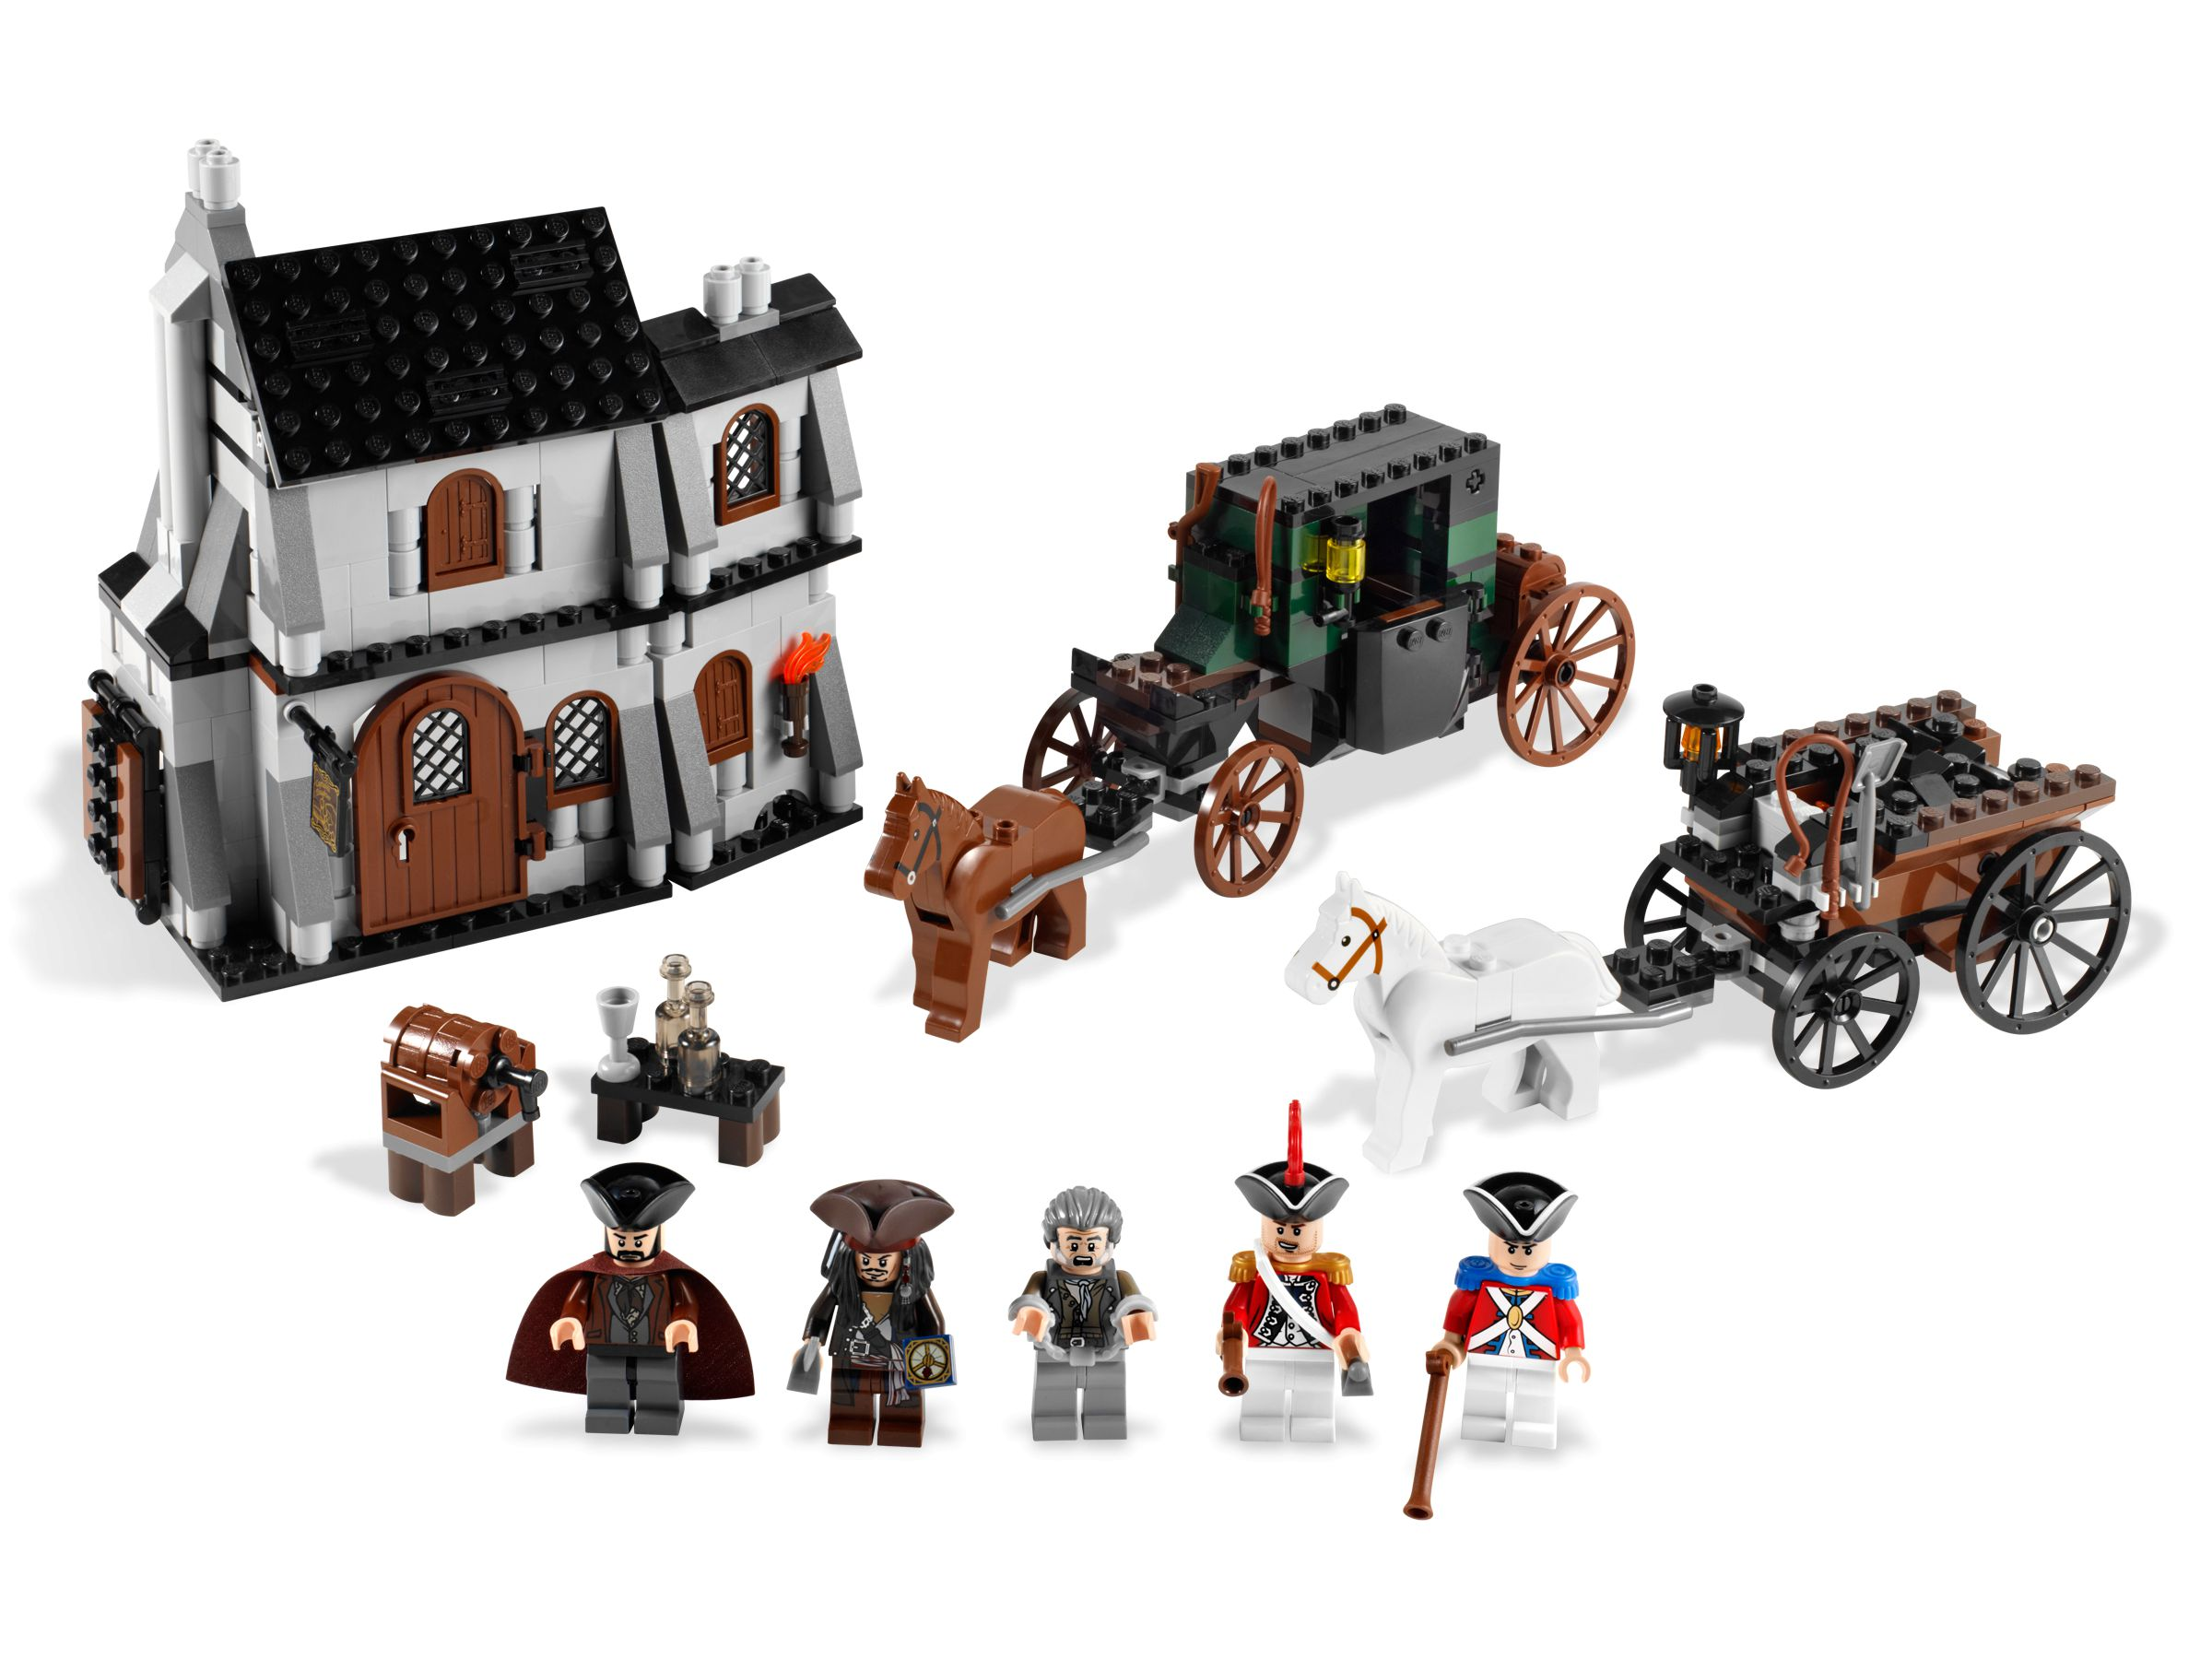 LEGO Pirates of the Caribbean 4193 Flucht aus London LEGO_4193.jpg